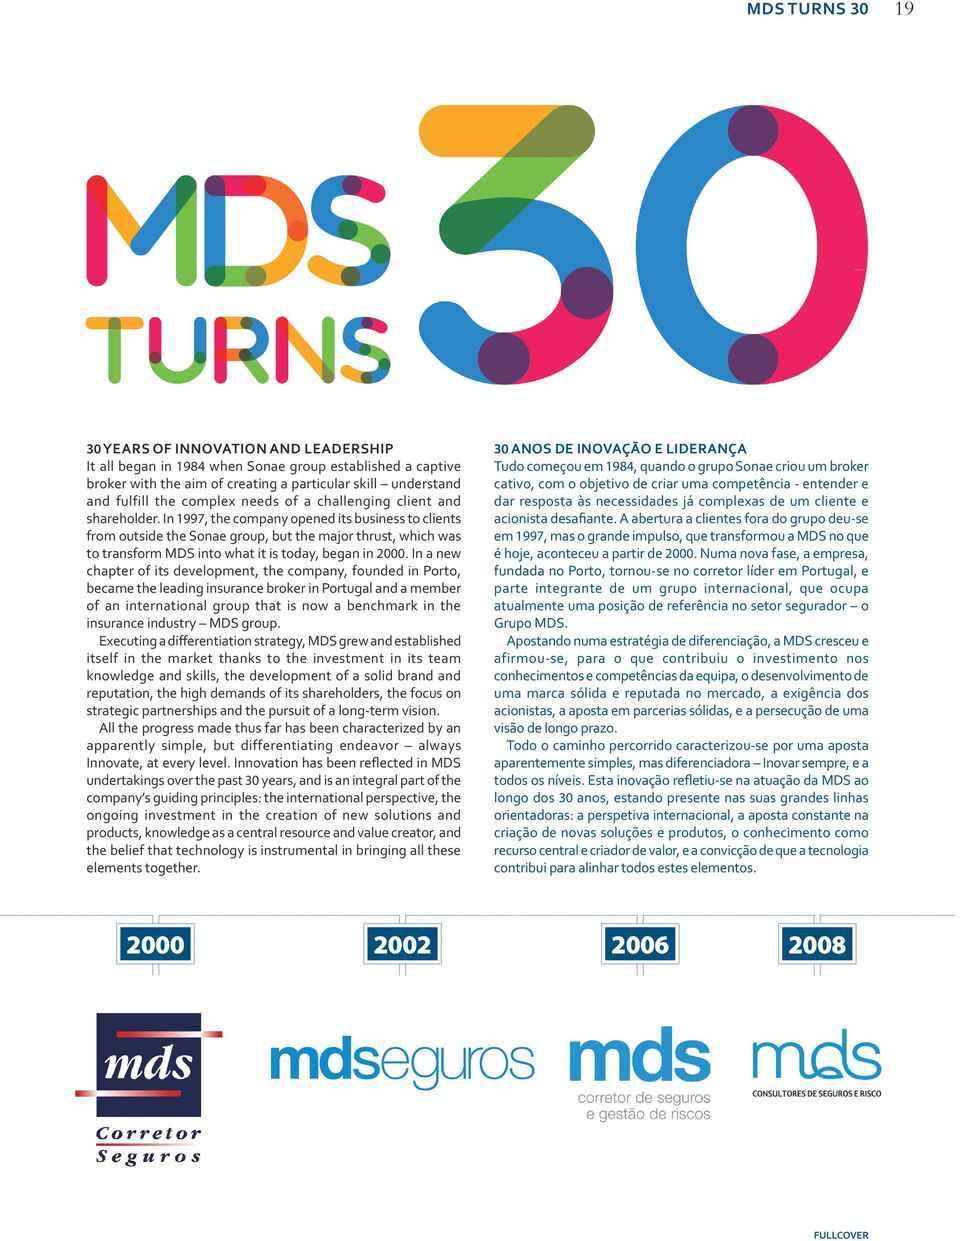 In 1997, the company opened its business to clients from outside the Sonae group, but the major thrust, which was to transform MDS into what it is today, began in 2000.